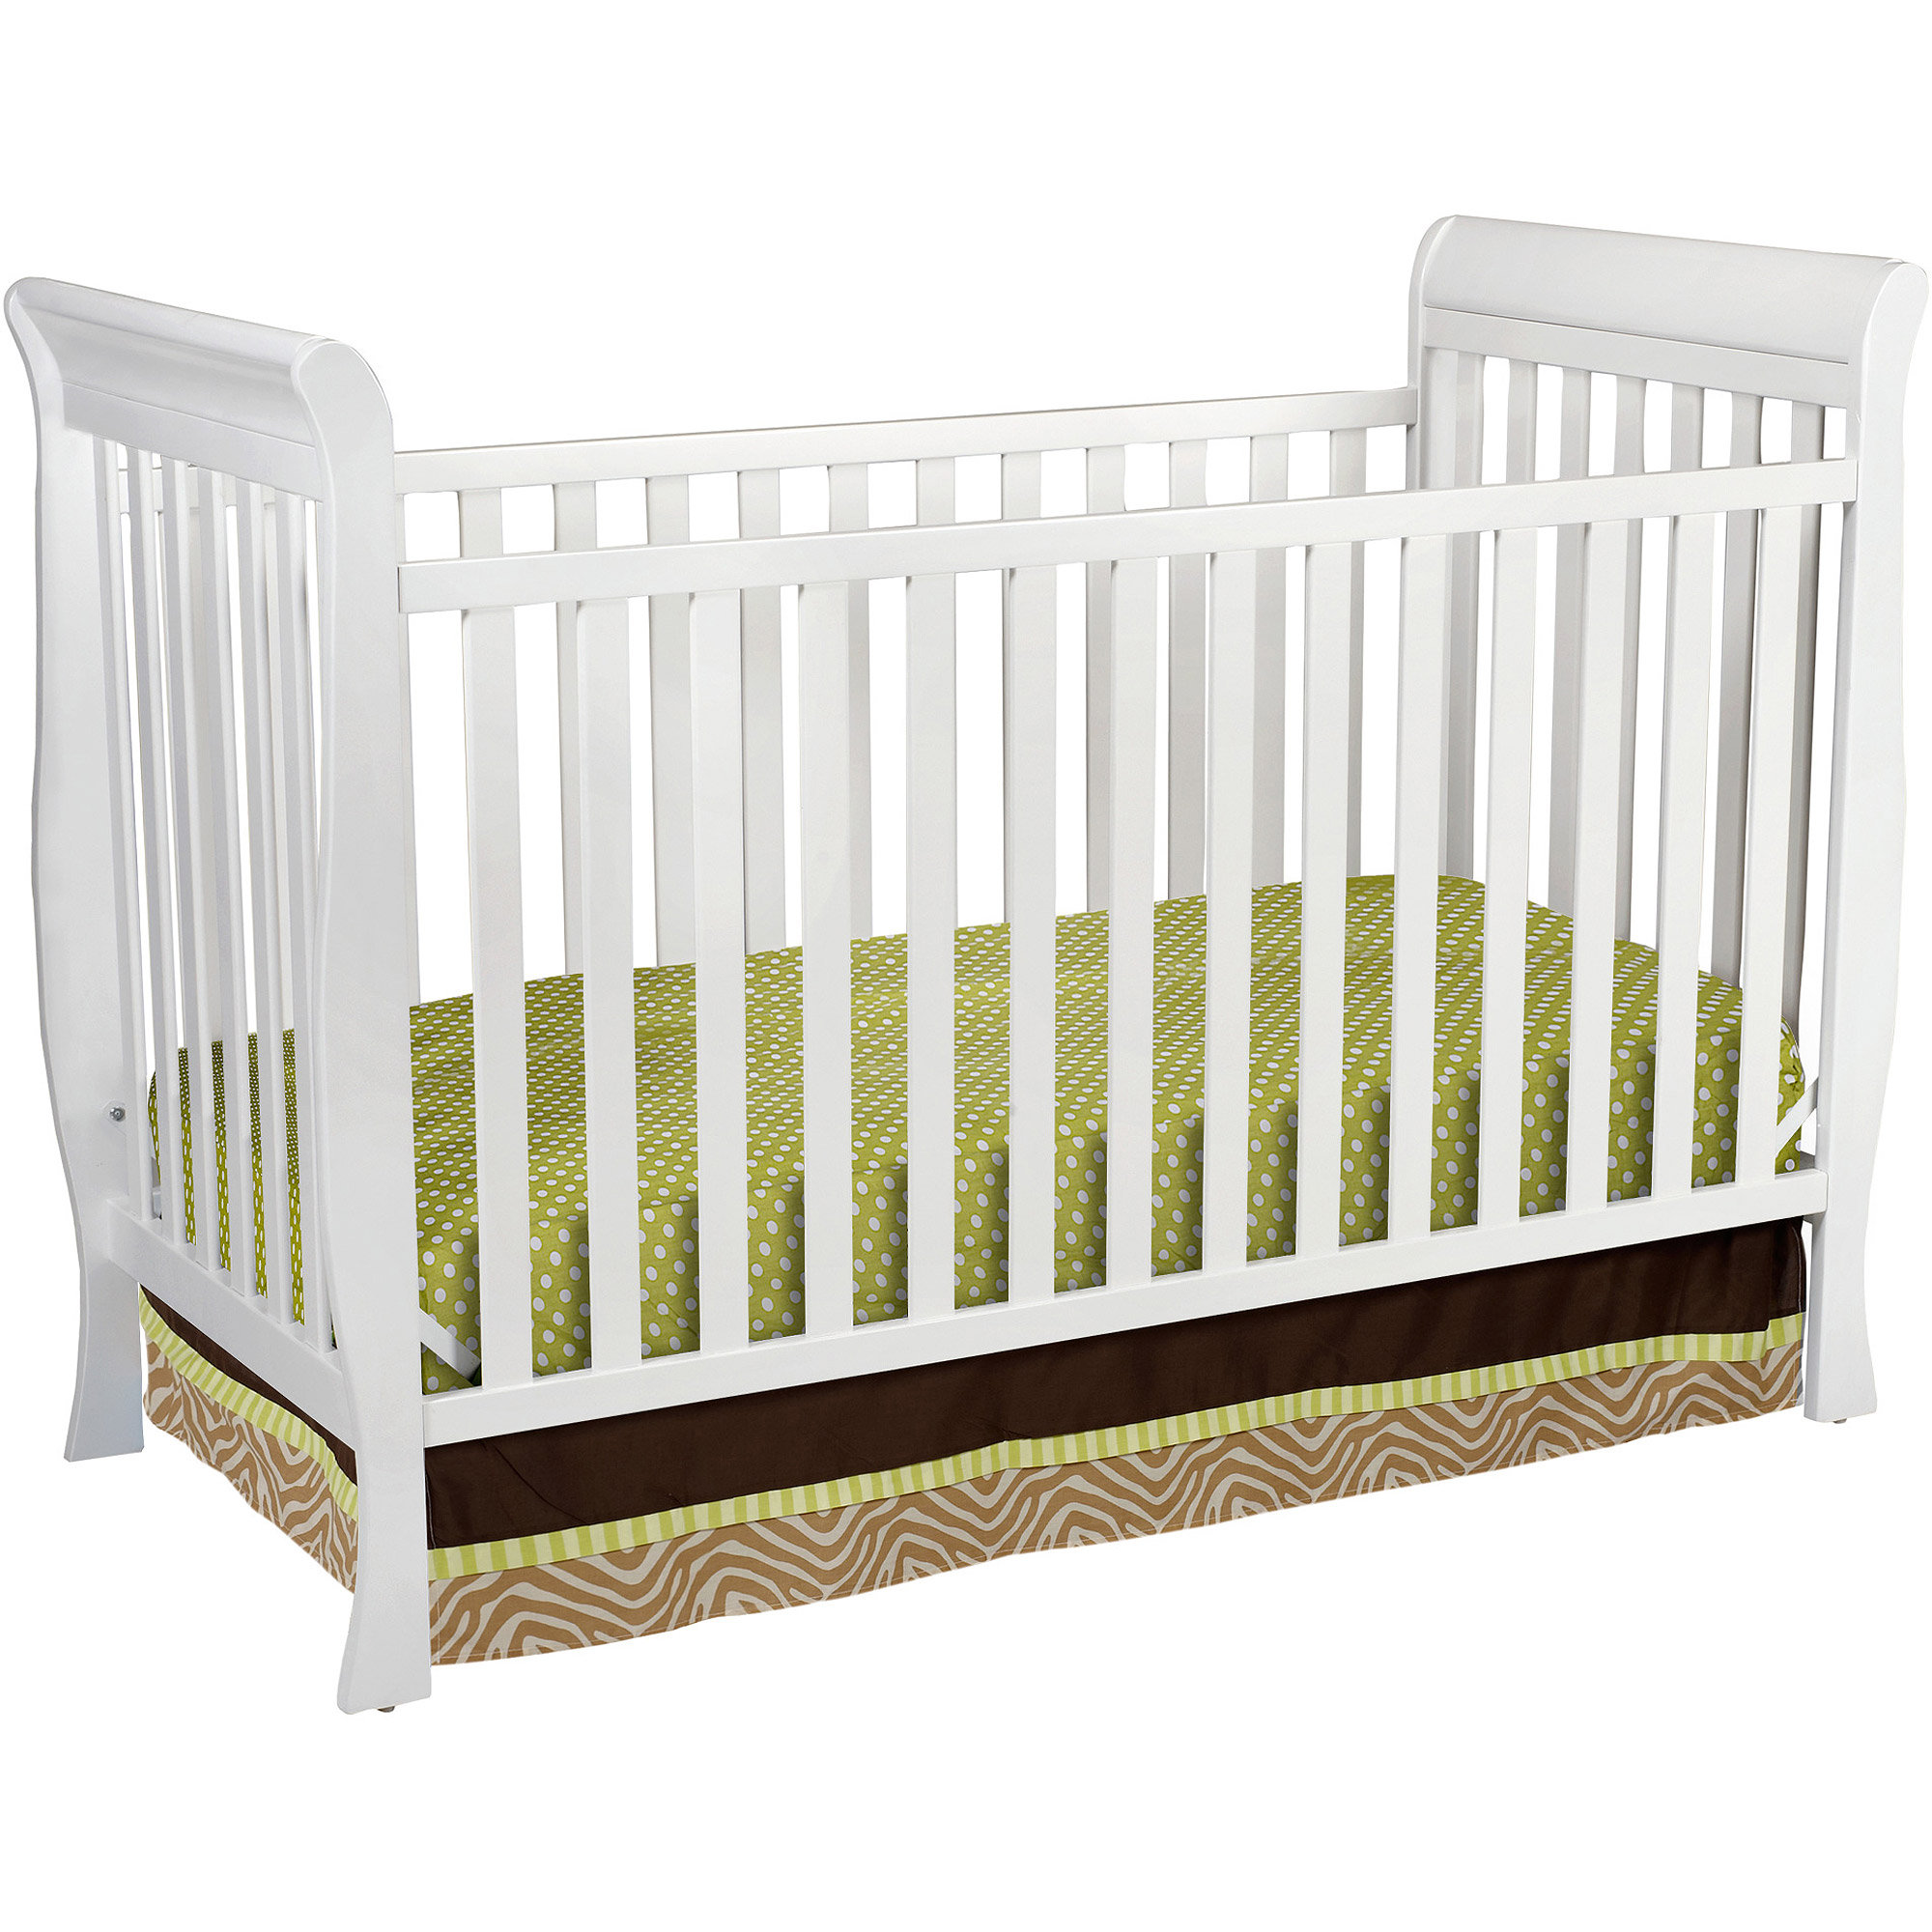 bars beds recall mothercare alert issues cribs without cot of news hyde safety which crib